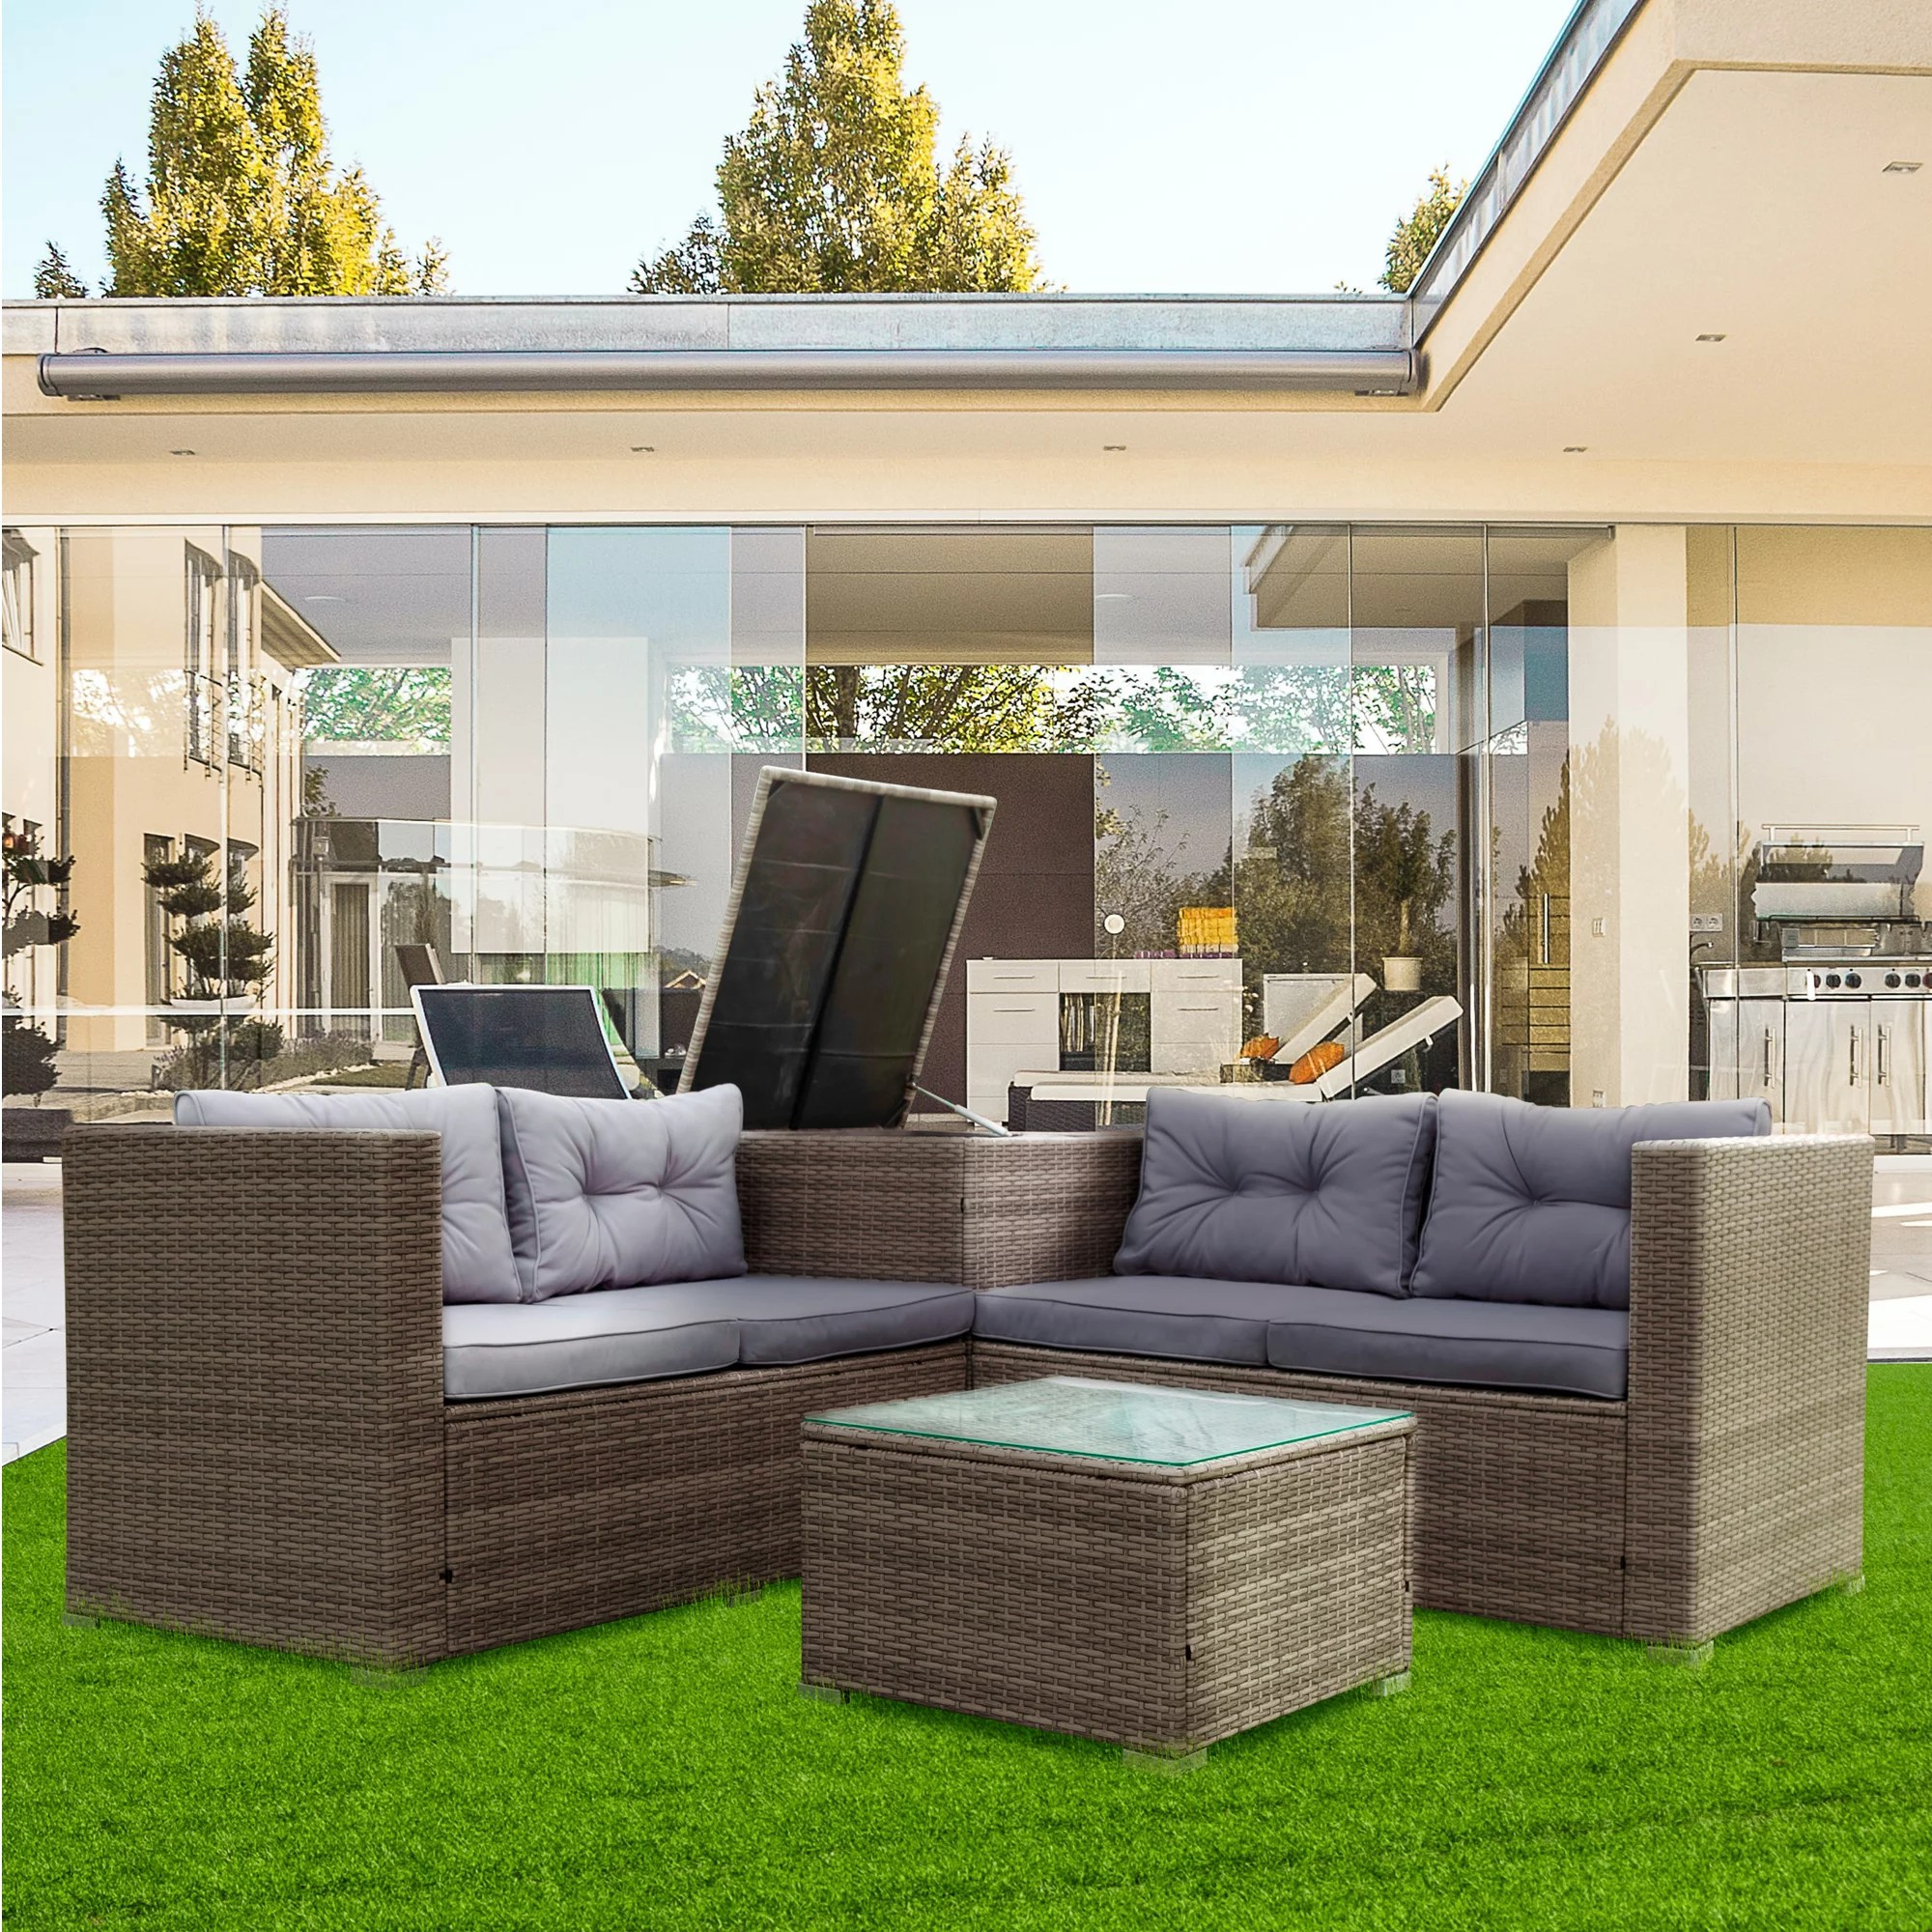 4 piece wicker brown patio sectional sofa set with storage ottoman all weather outdoor conversation set dining set with cushions and table for